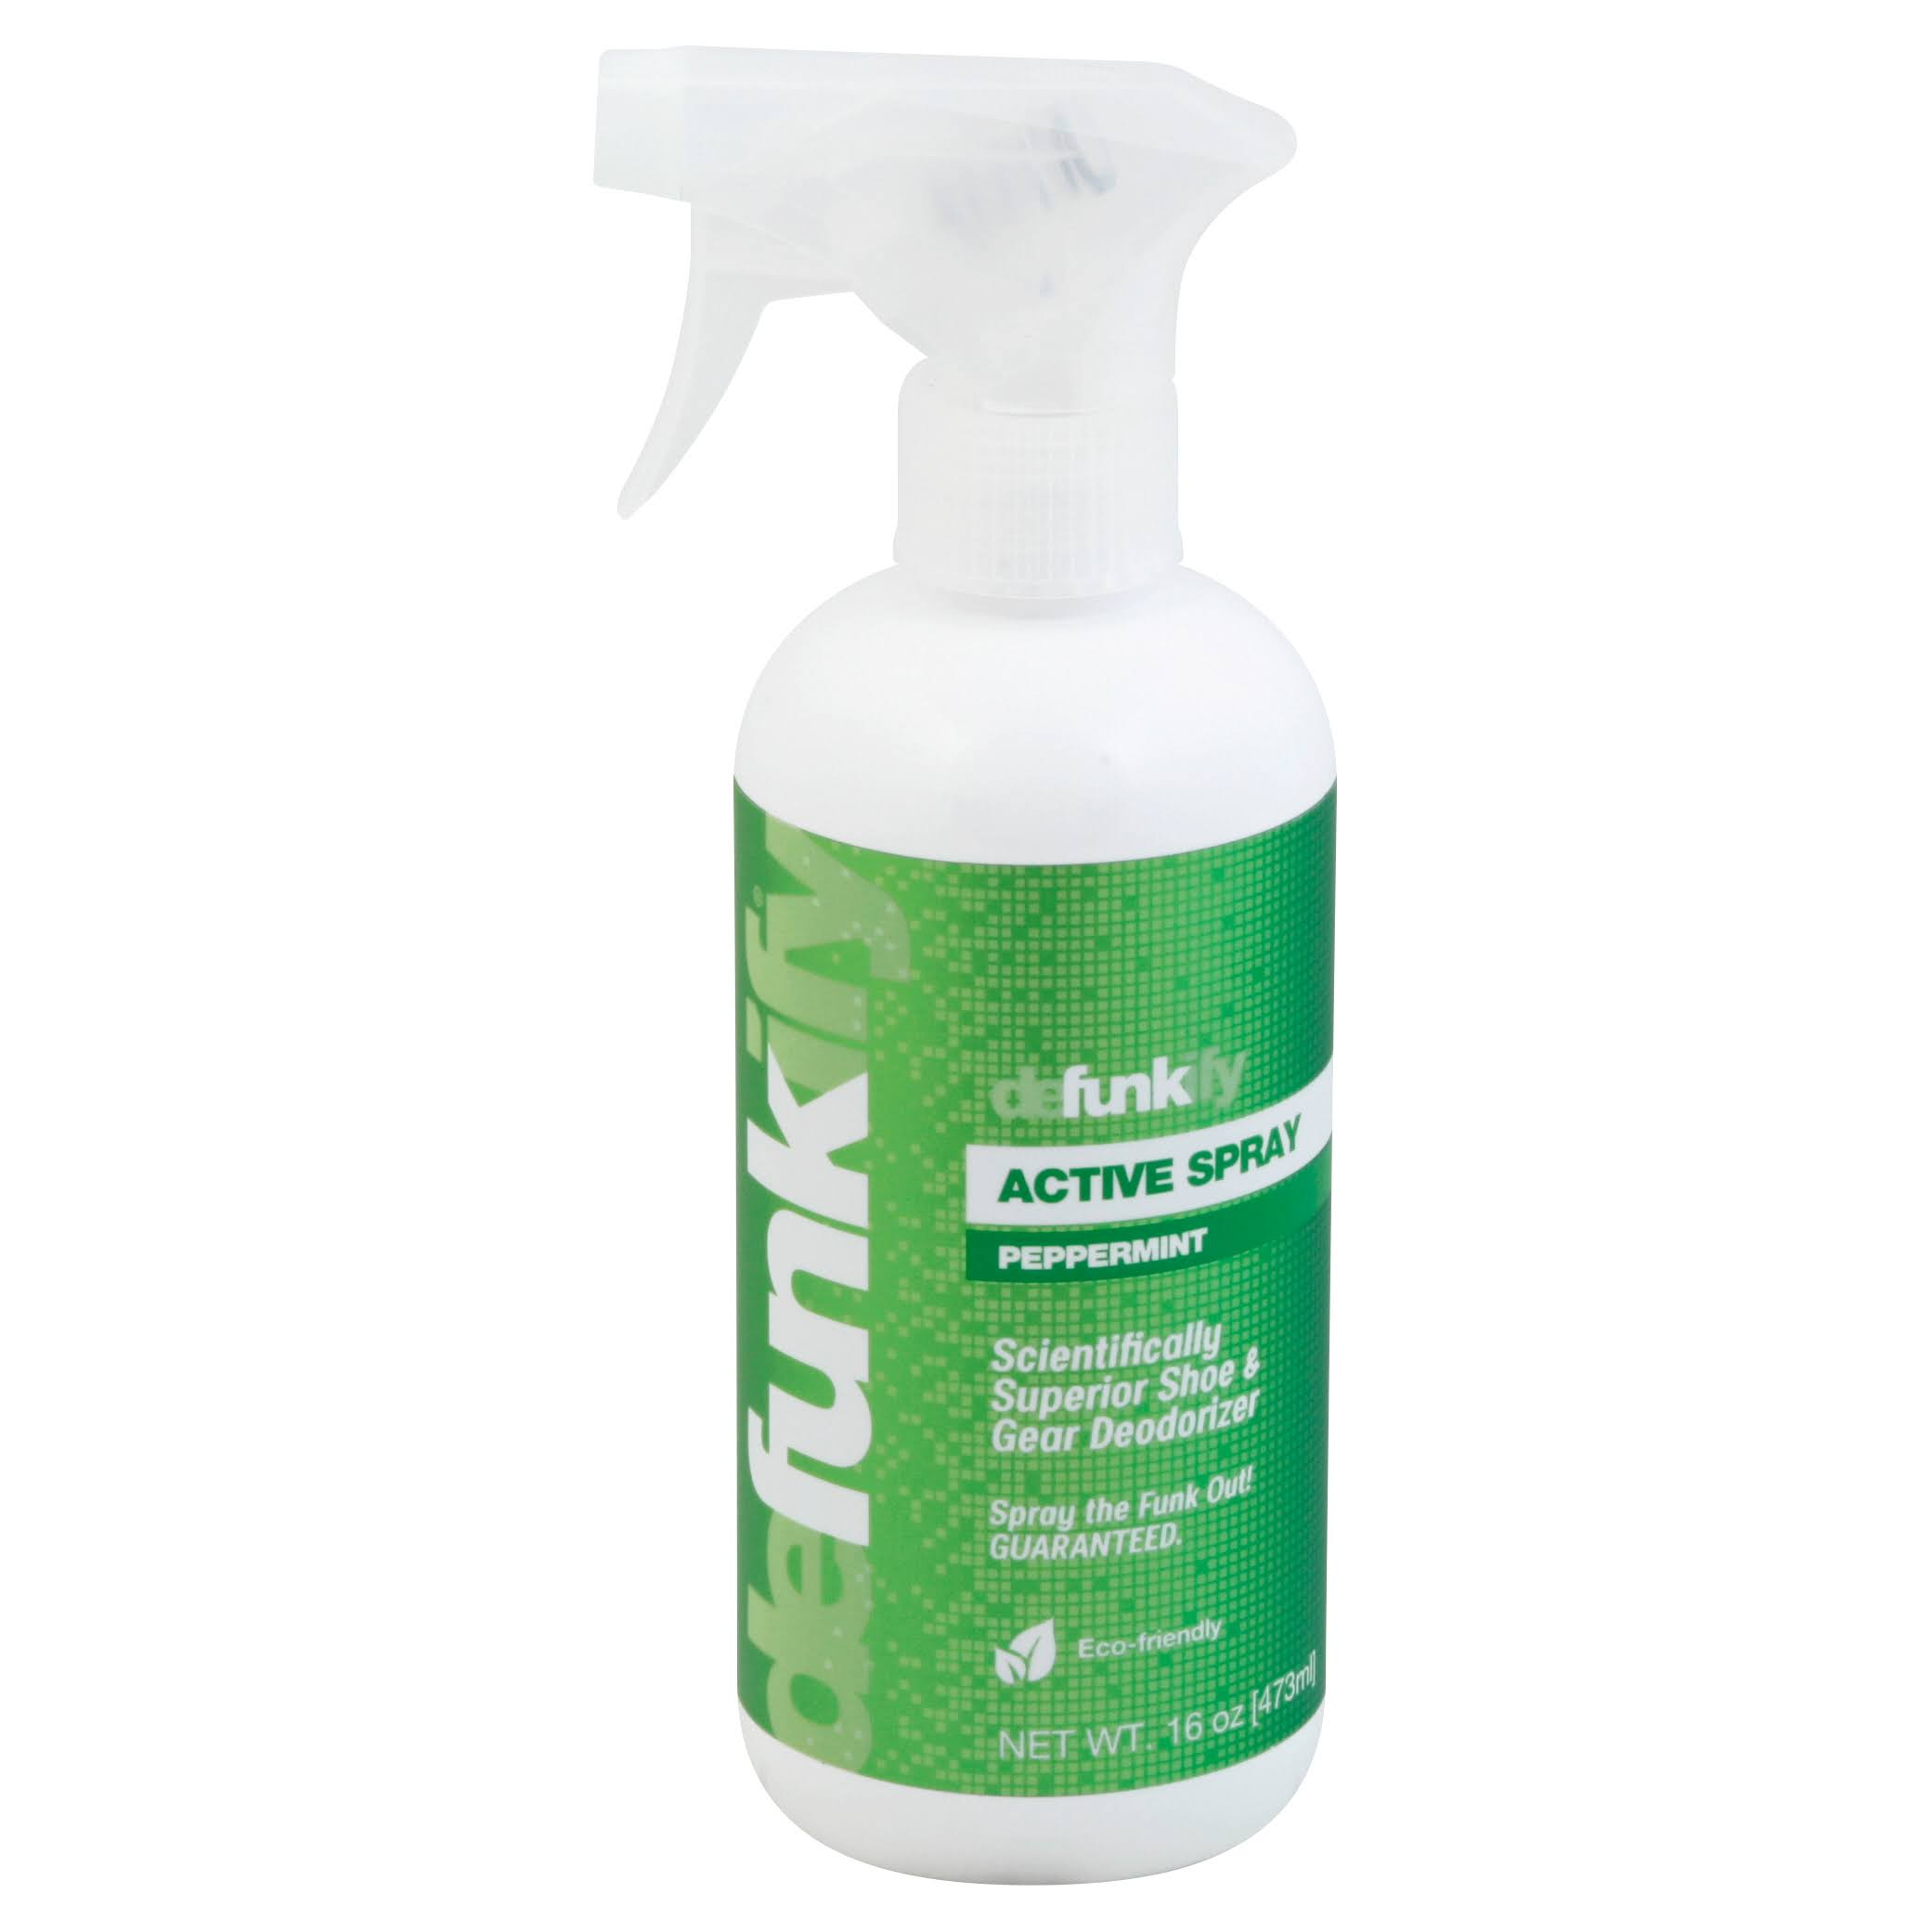 Defunkify Active Spray, Peppermint - 16 oz